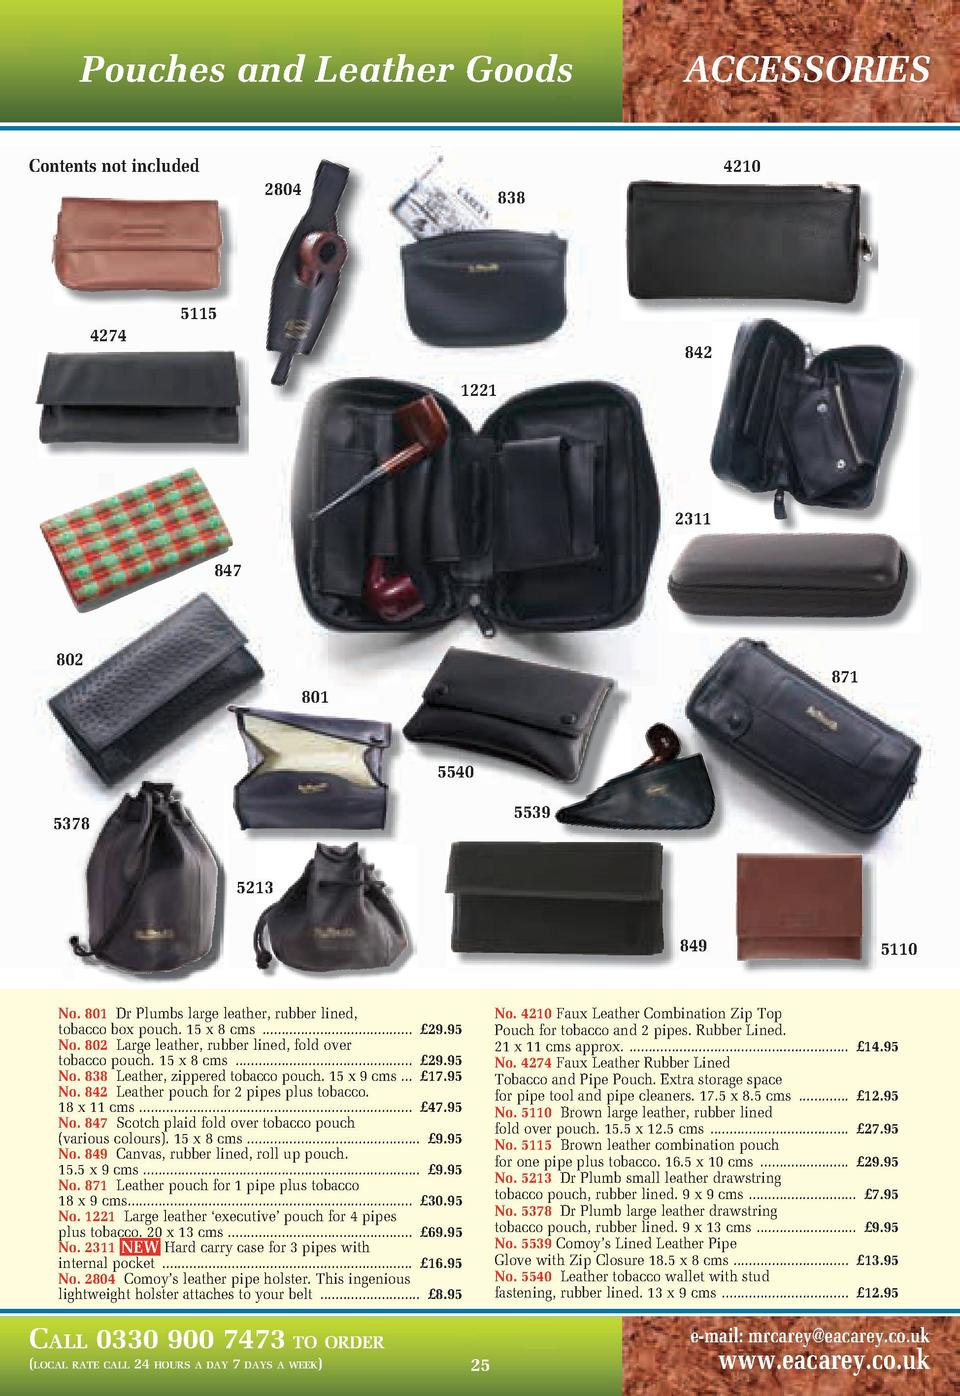 Pouches and Leather Goods  ACCESSORIES  Contents not included  4210 2804  4274  838  5115 842 1221  2311 847  802  871  80...